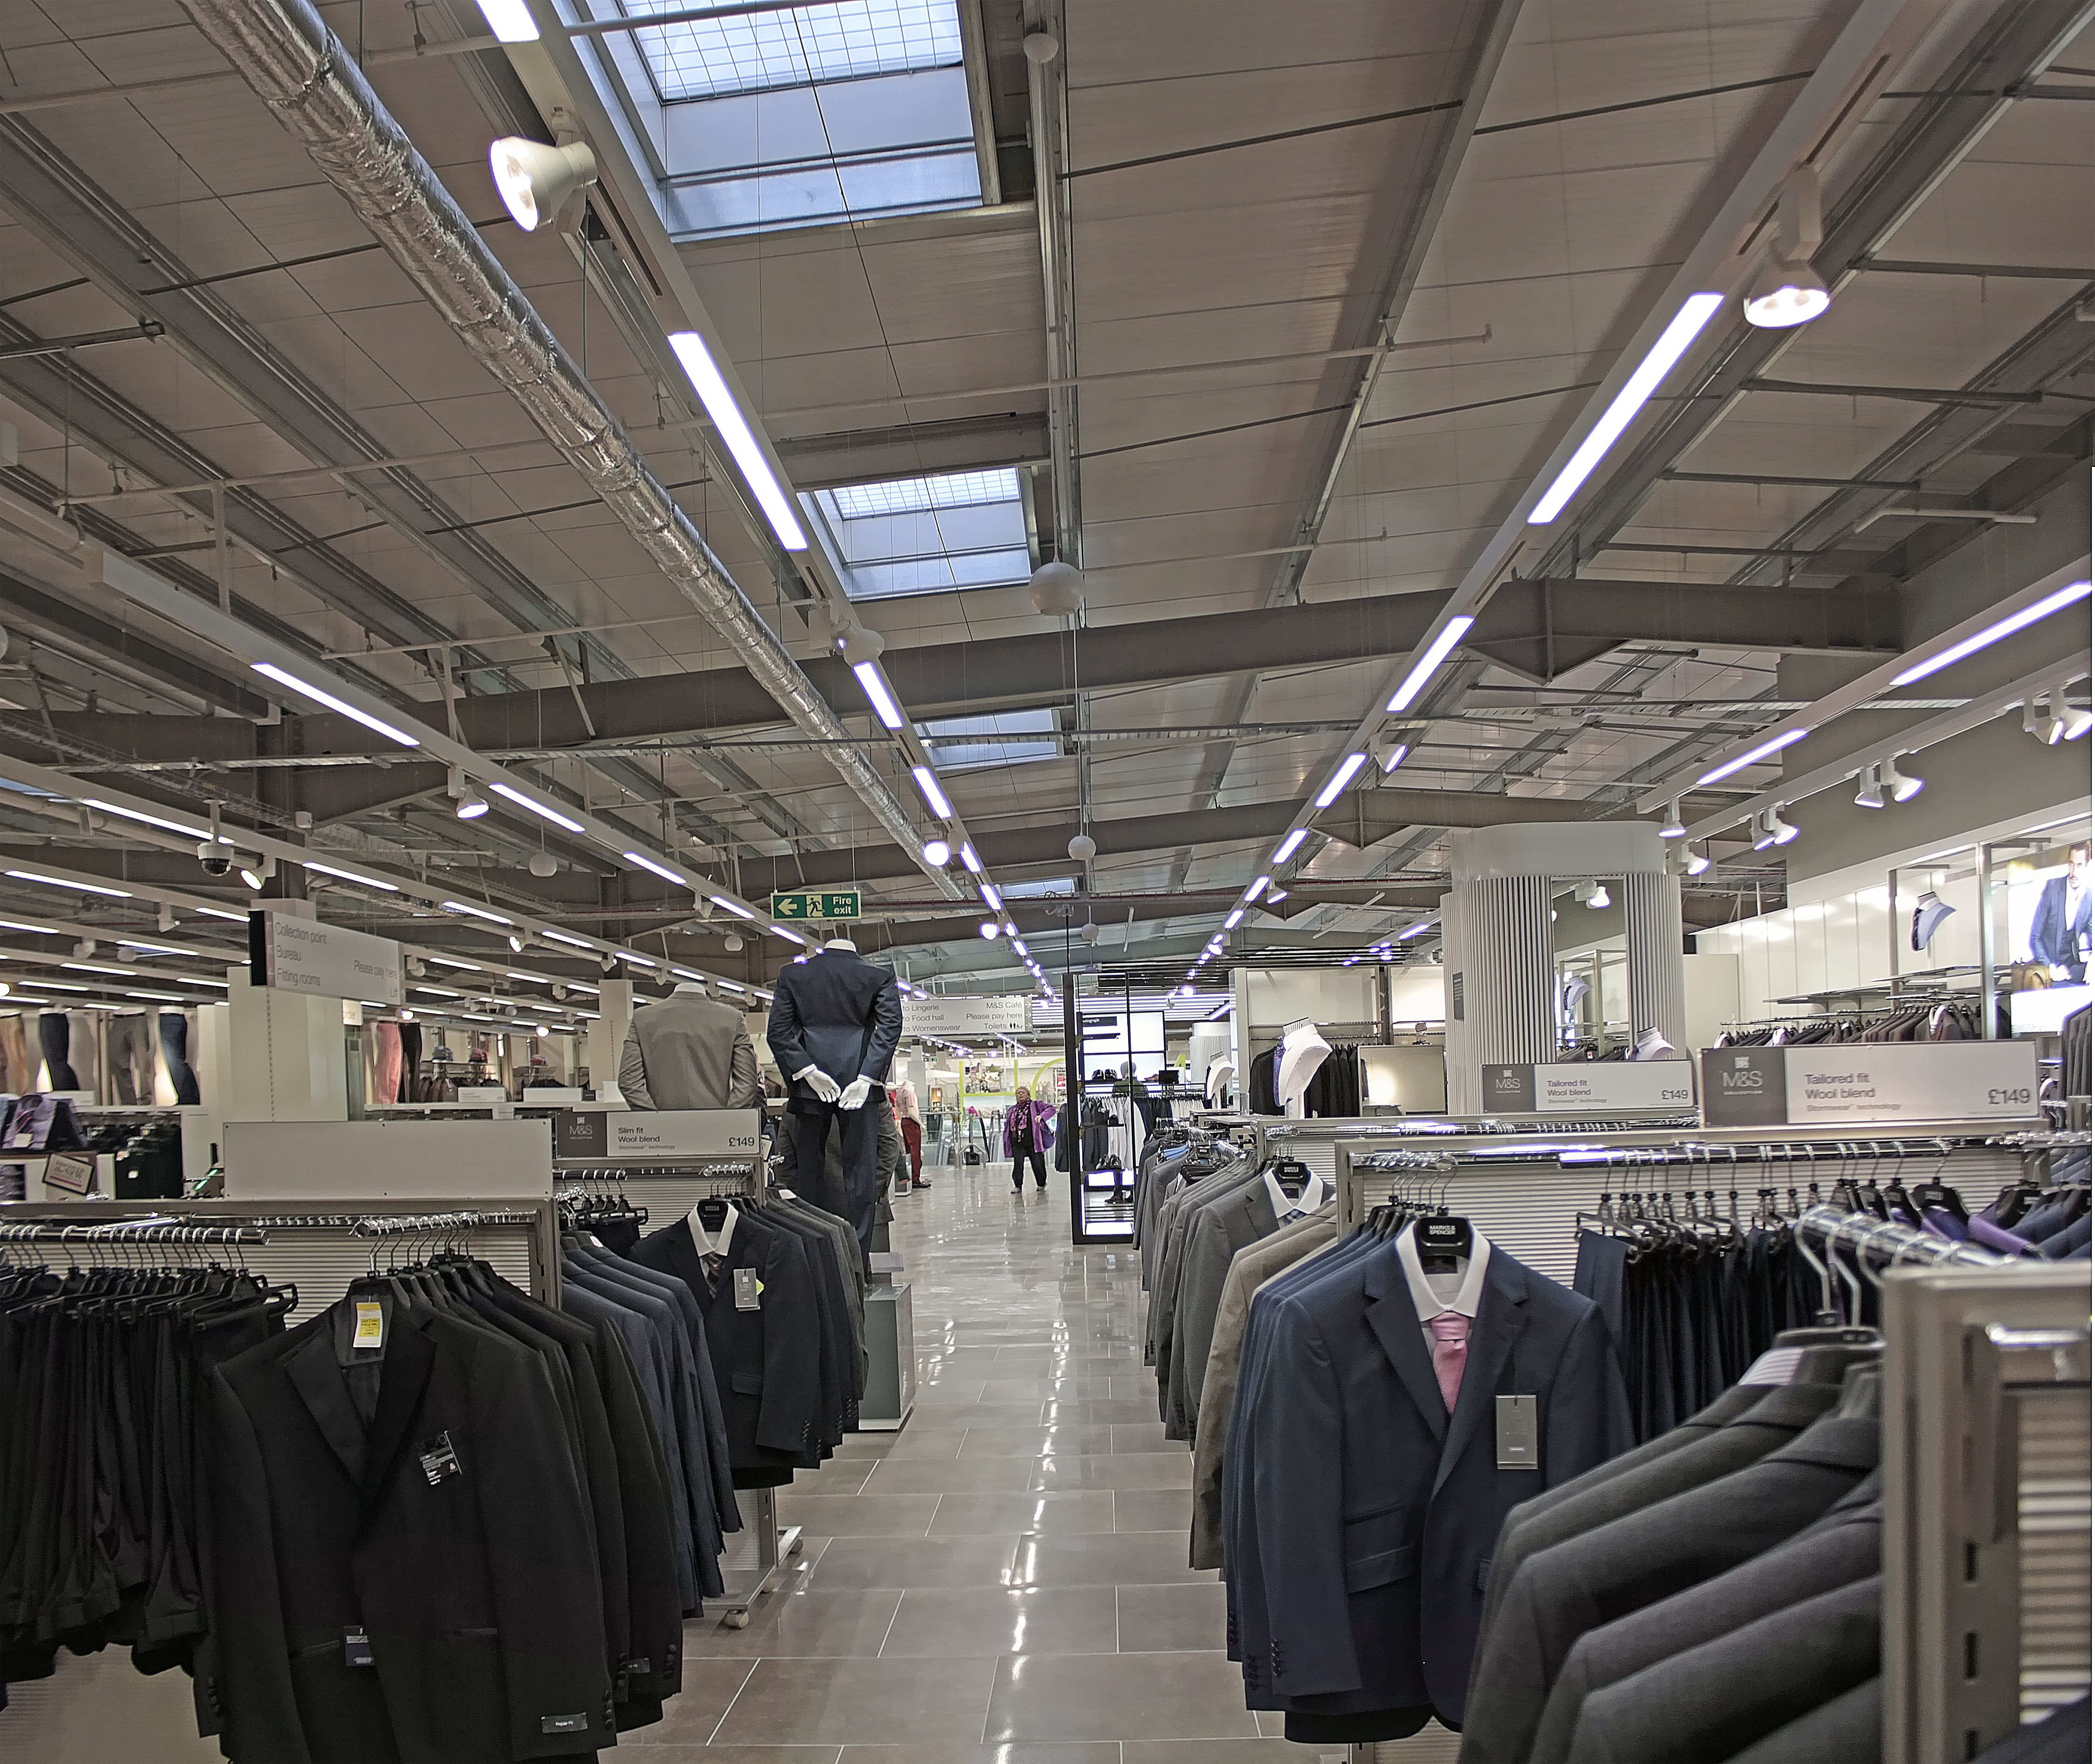 Iluminación natural Lledó Sunoptics en la nueva tienda Marks&Spencer en Monks Cross York  http://grupolledo.blogspot.com.es/2014/05/iluminacion-natural-lledo-sunoptics-en.html  LLEDO SUNOPTICS DAYLIGHTING AT THE NEW Mark&Spencer STORE IN MONKS CROSS YORK  http://grupolledo.blogspot.com.es/2014/05/lledo-sunoptics-daylighting-at-new-mark.html   #greenlighting #luznatural #Sunoptics #daylighting